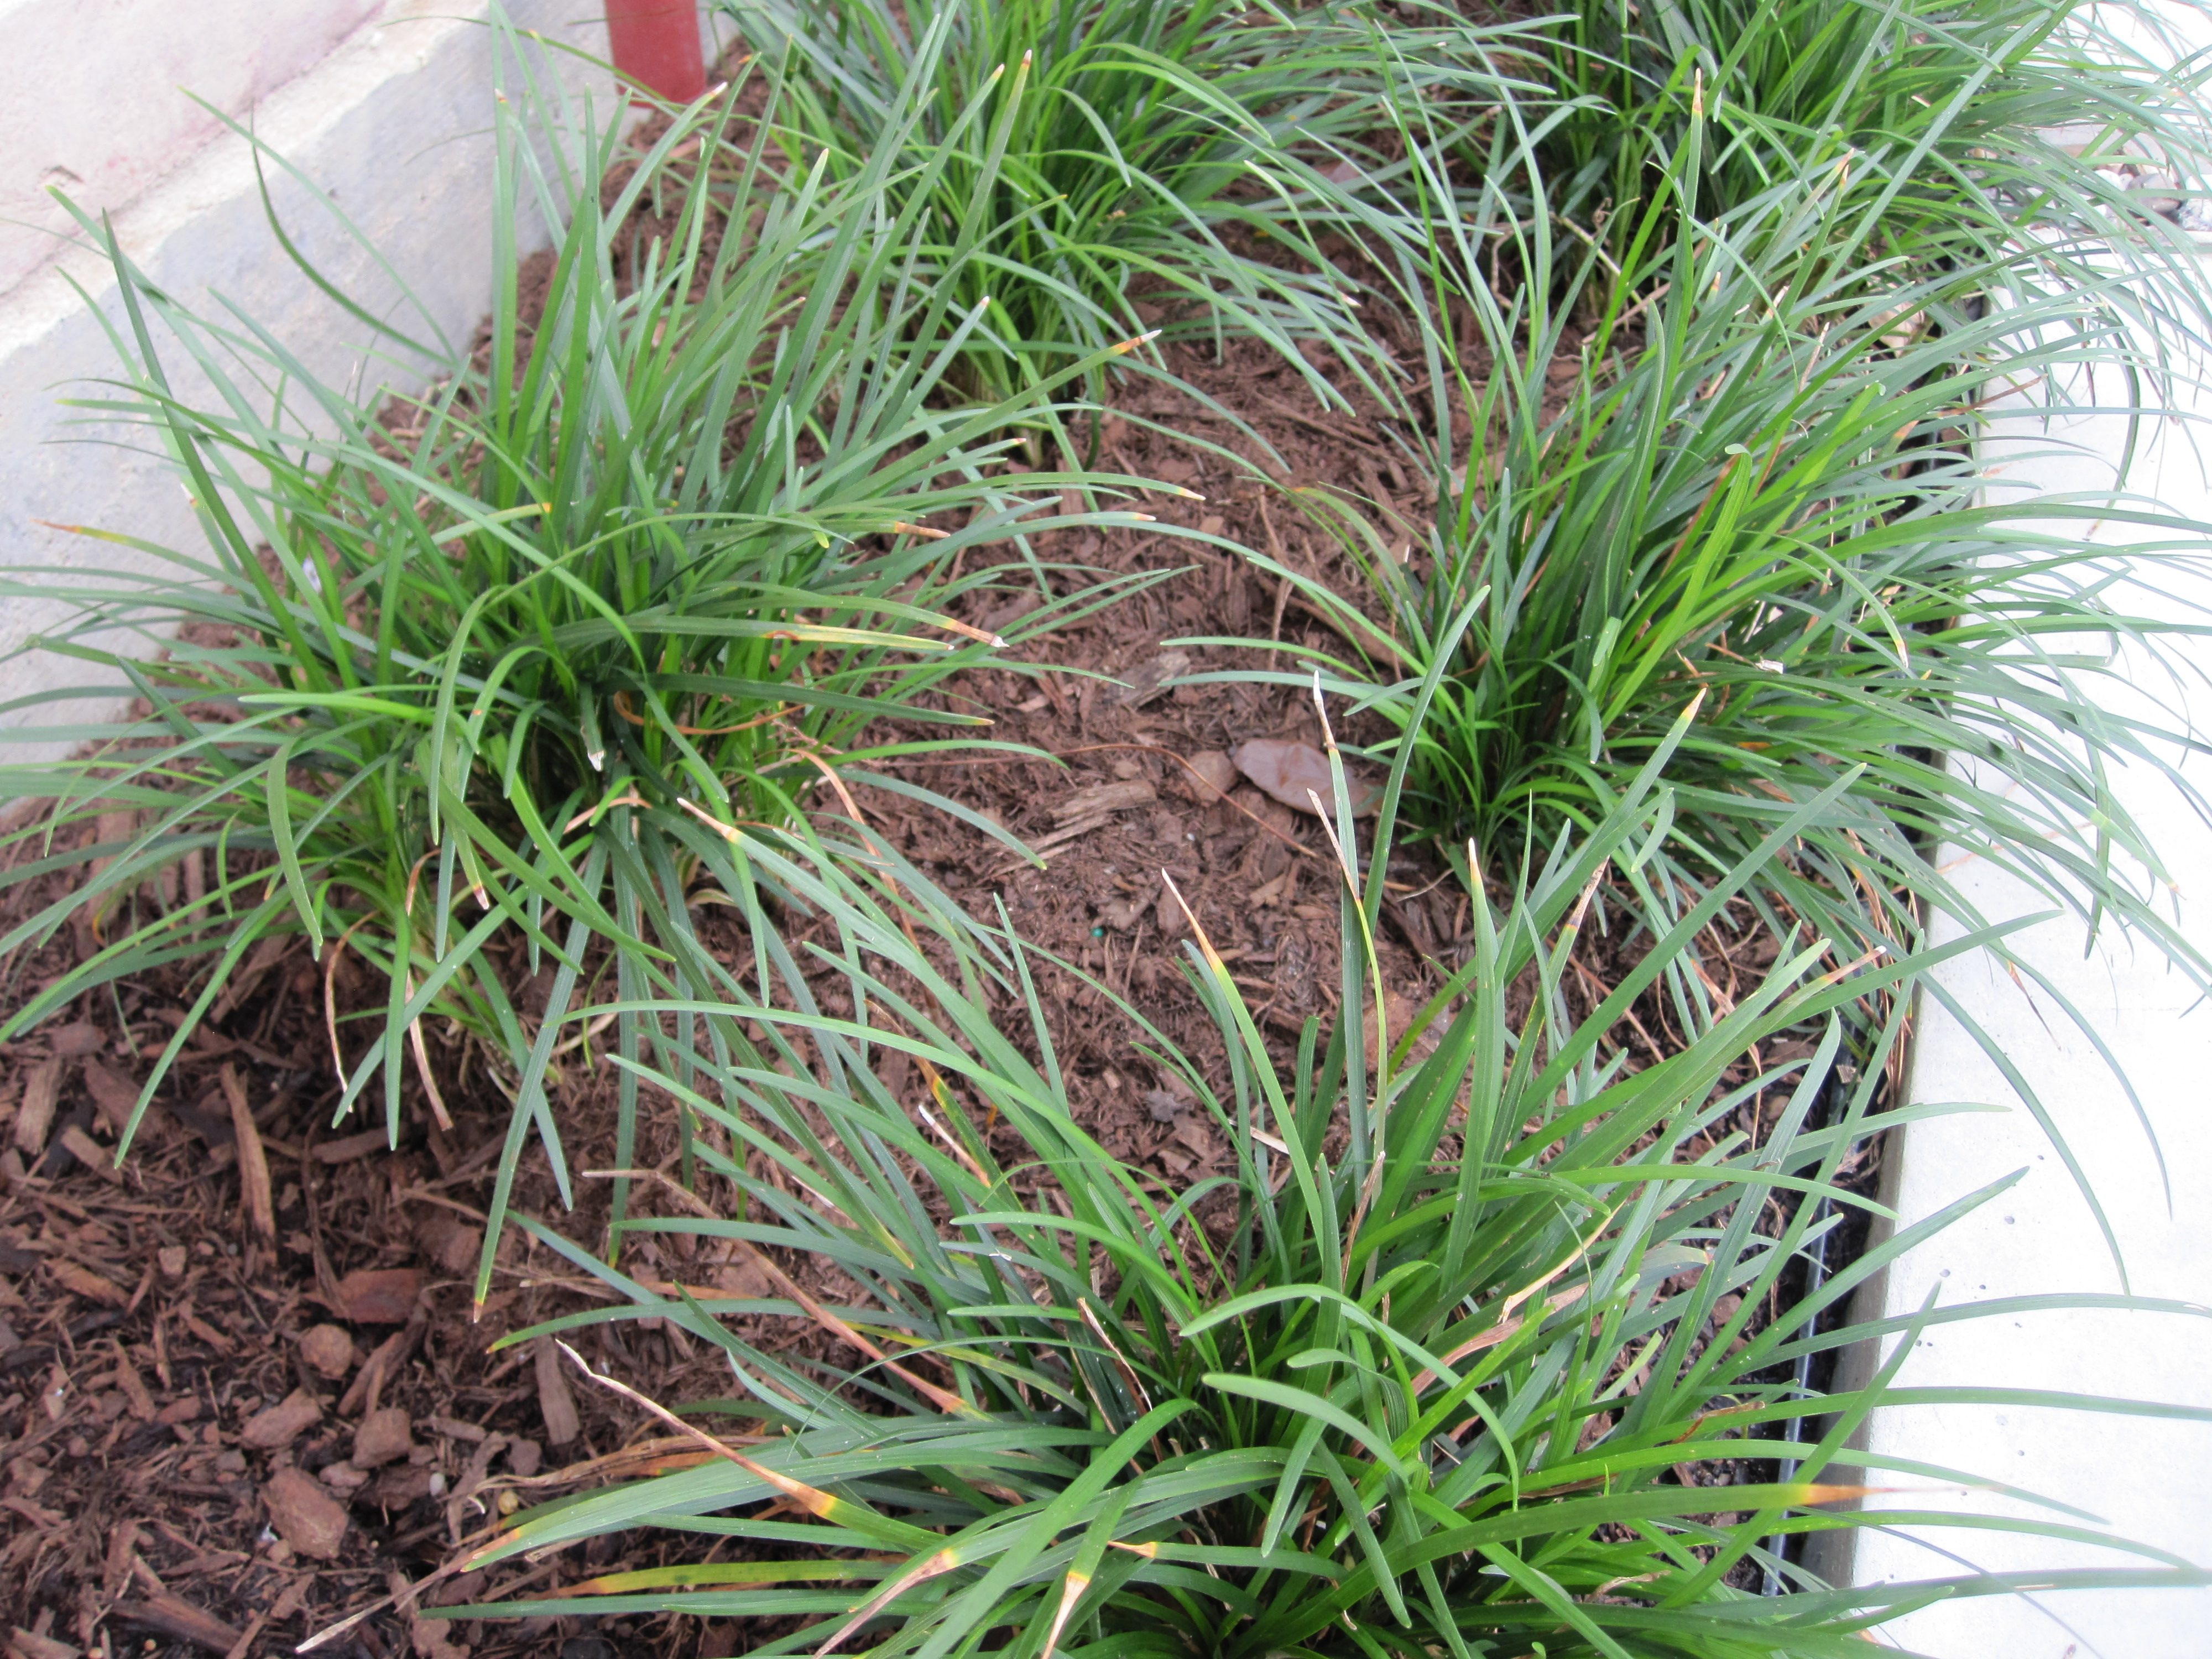 From weeds to no mow austin style garden part 2 the for Garden grass plants